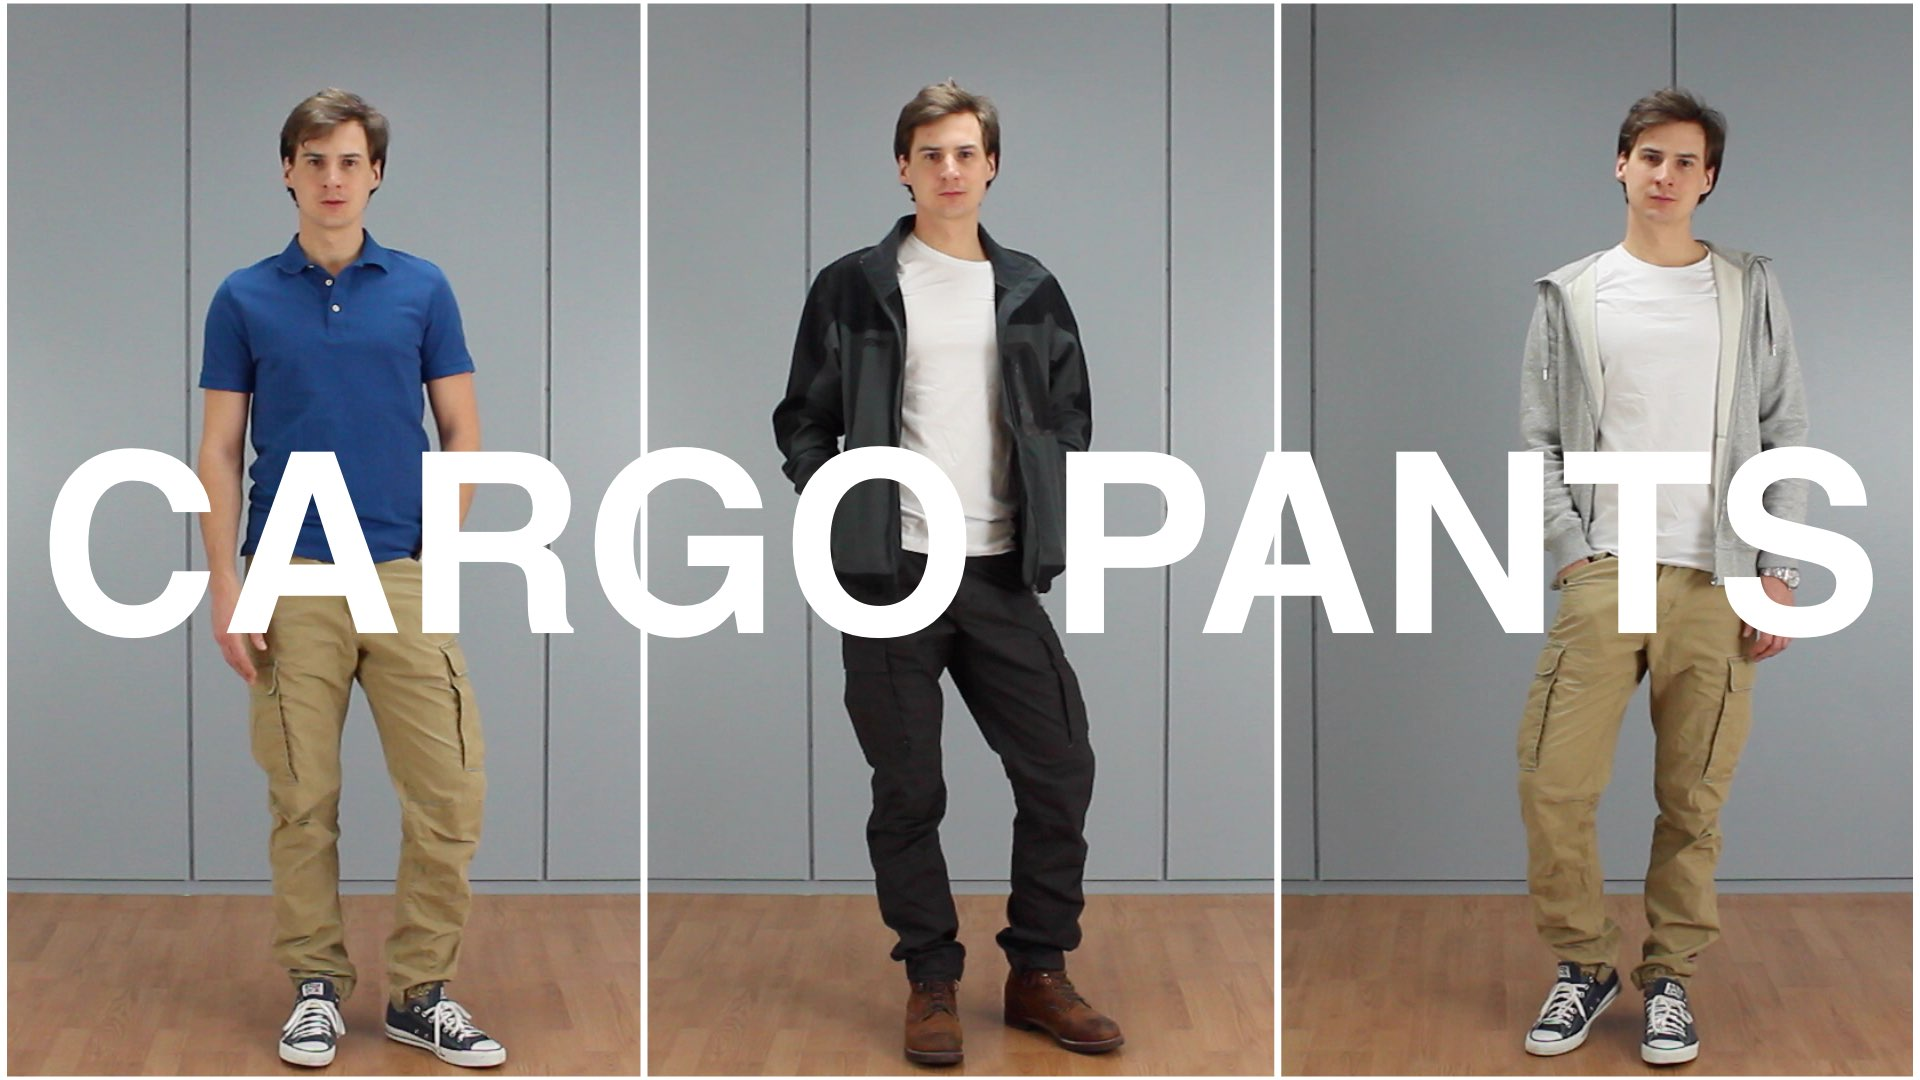 Cargo pants for men: 5 great outfits + top 11 style mistakes.